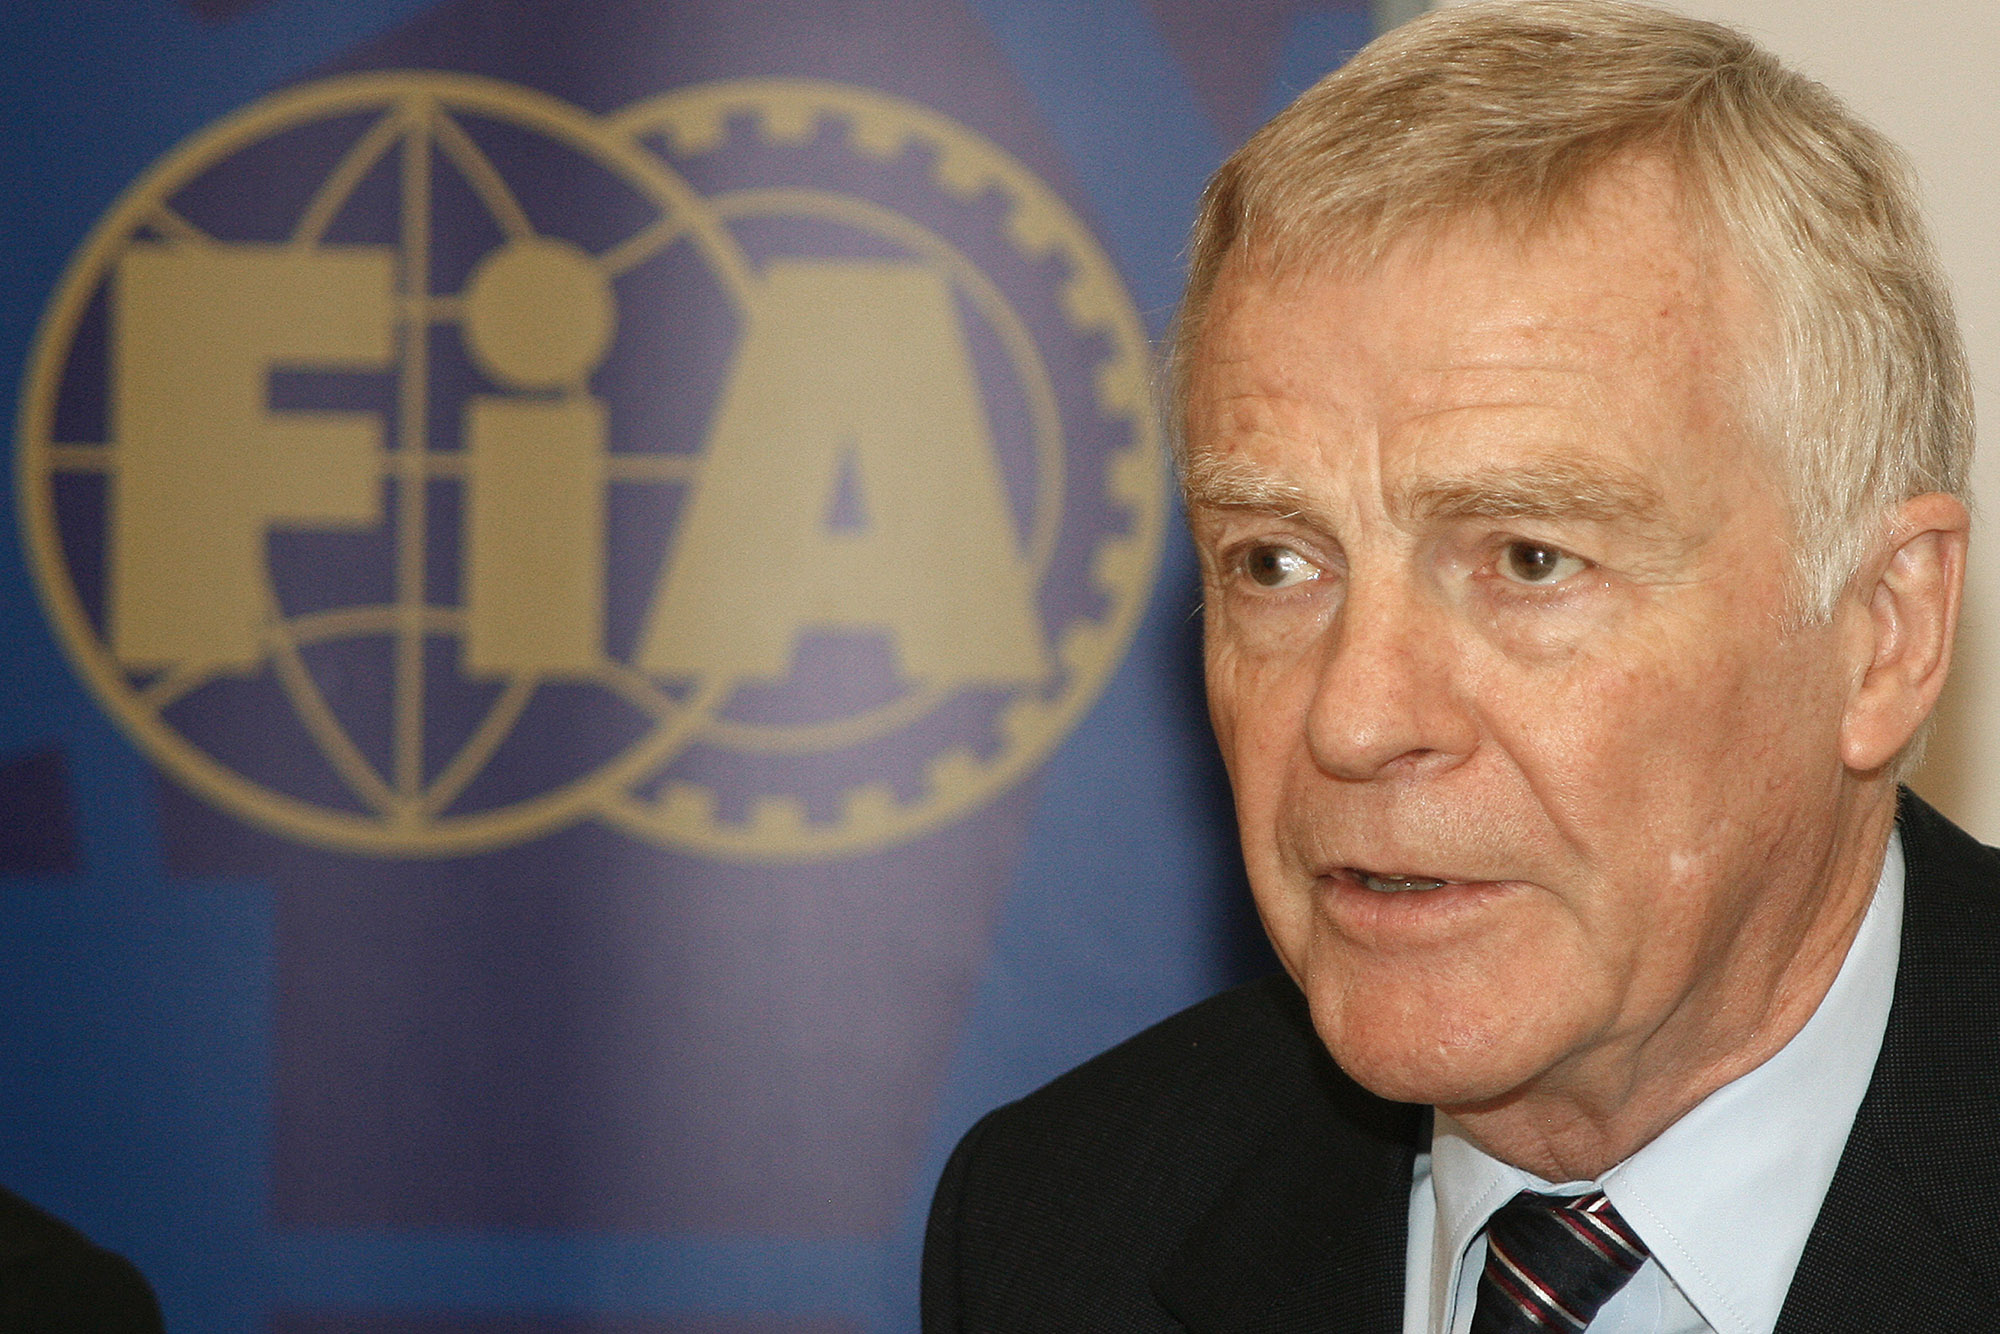 Max Mosley next to the FIA logo